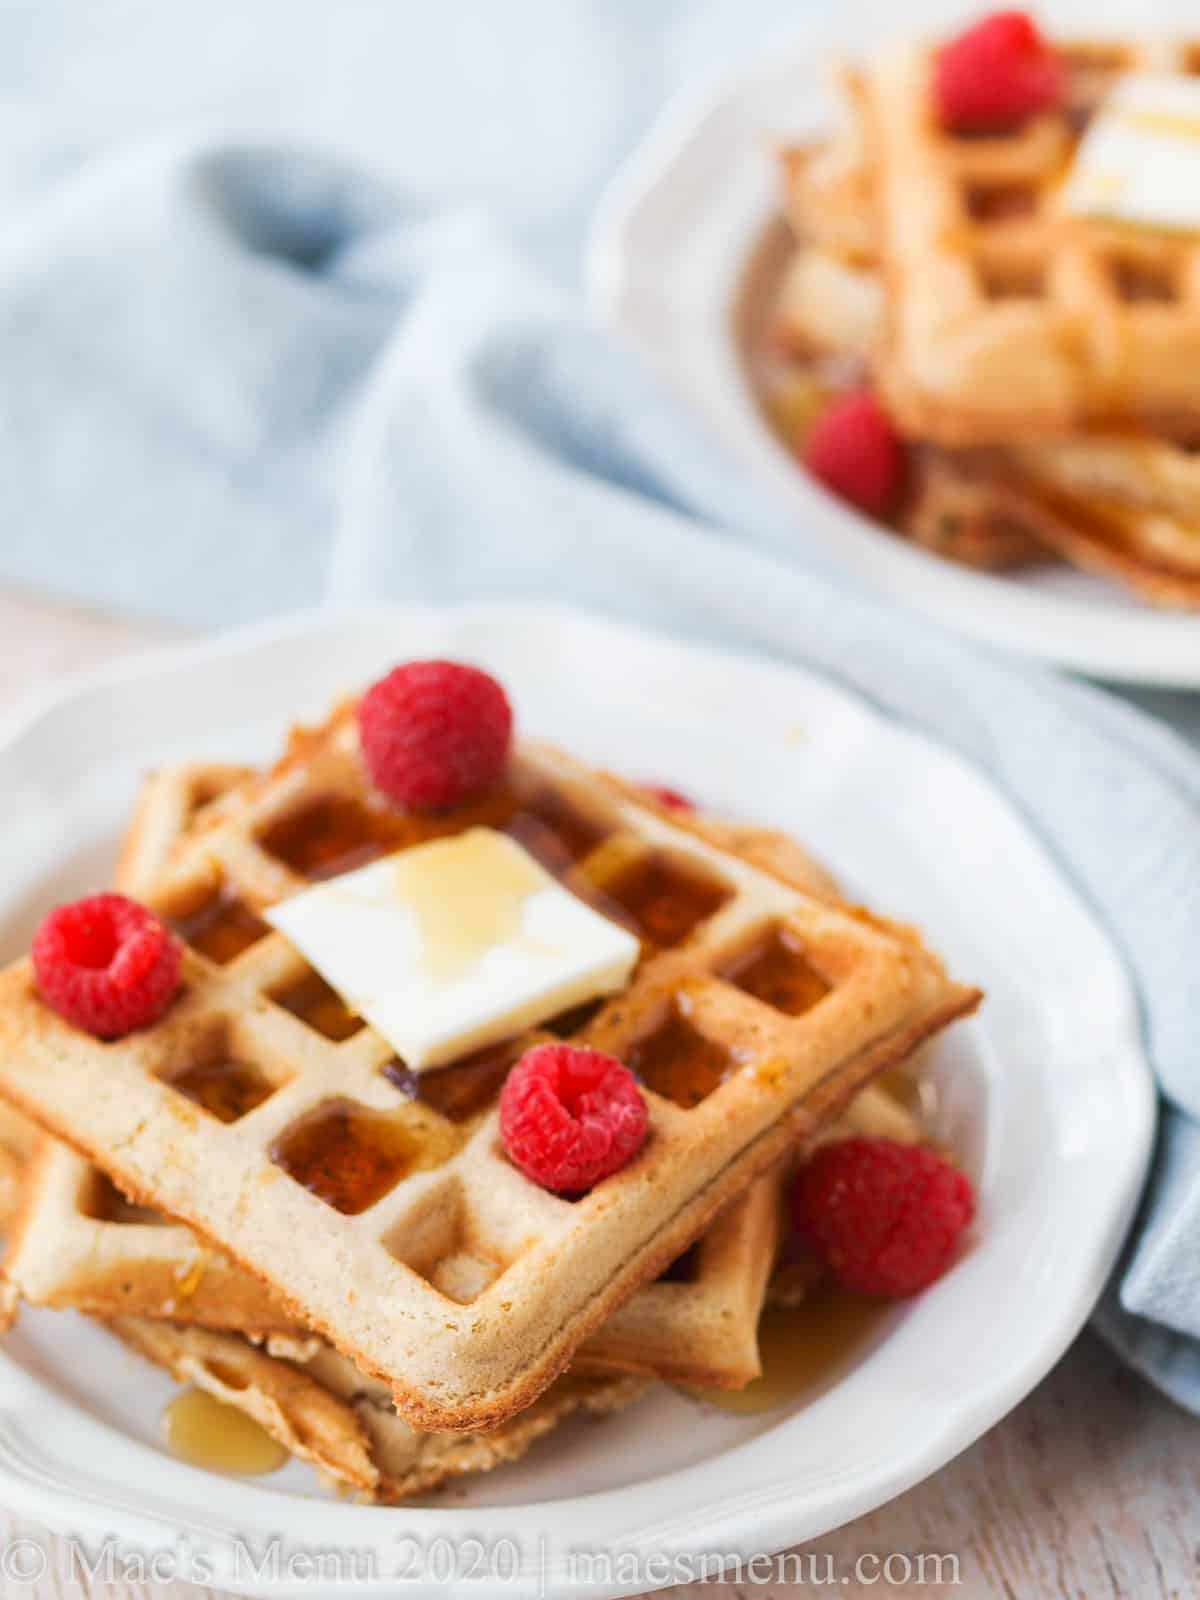 Two plates of my favorite whole wheat waffle recipe.